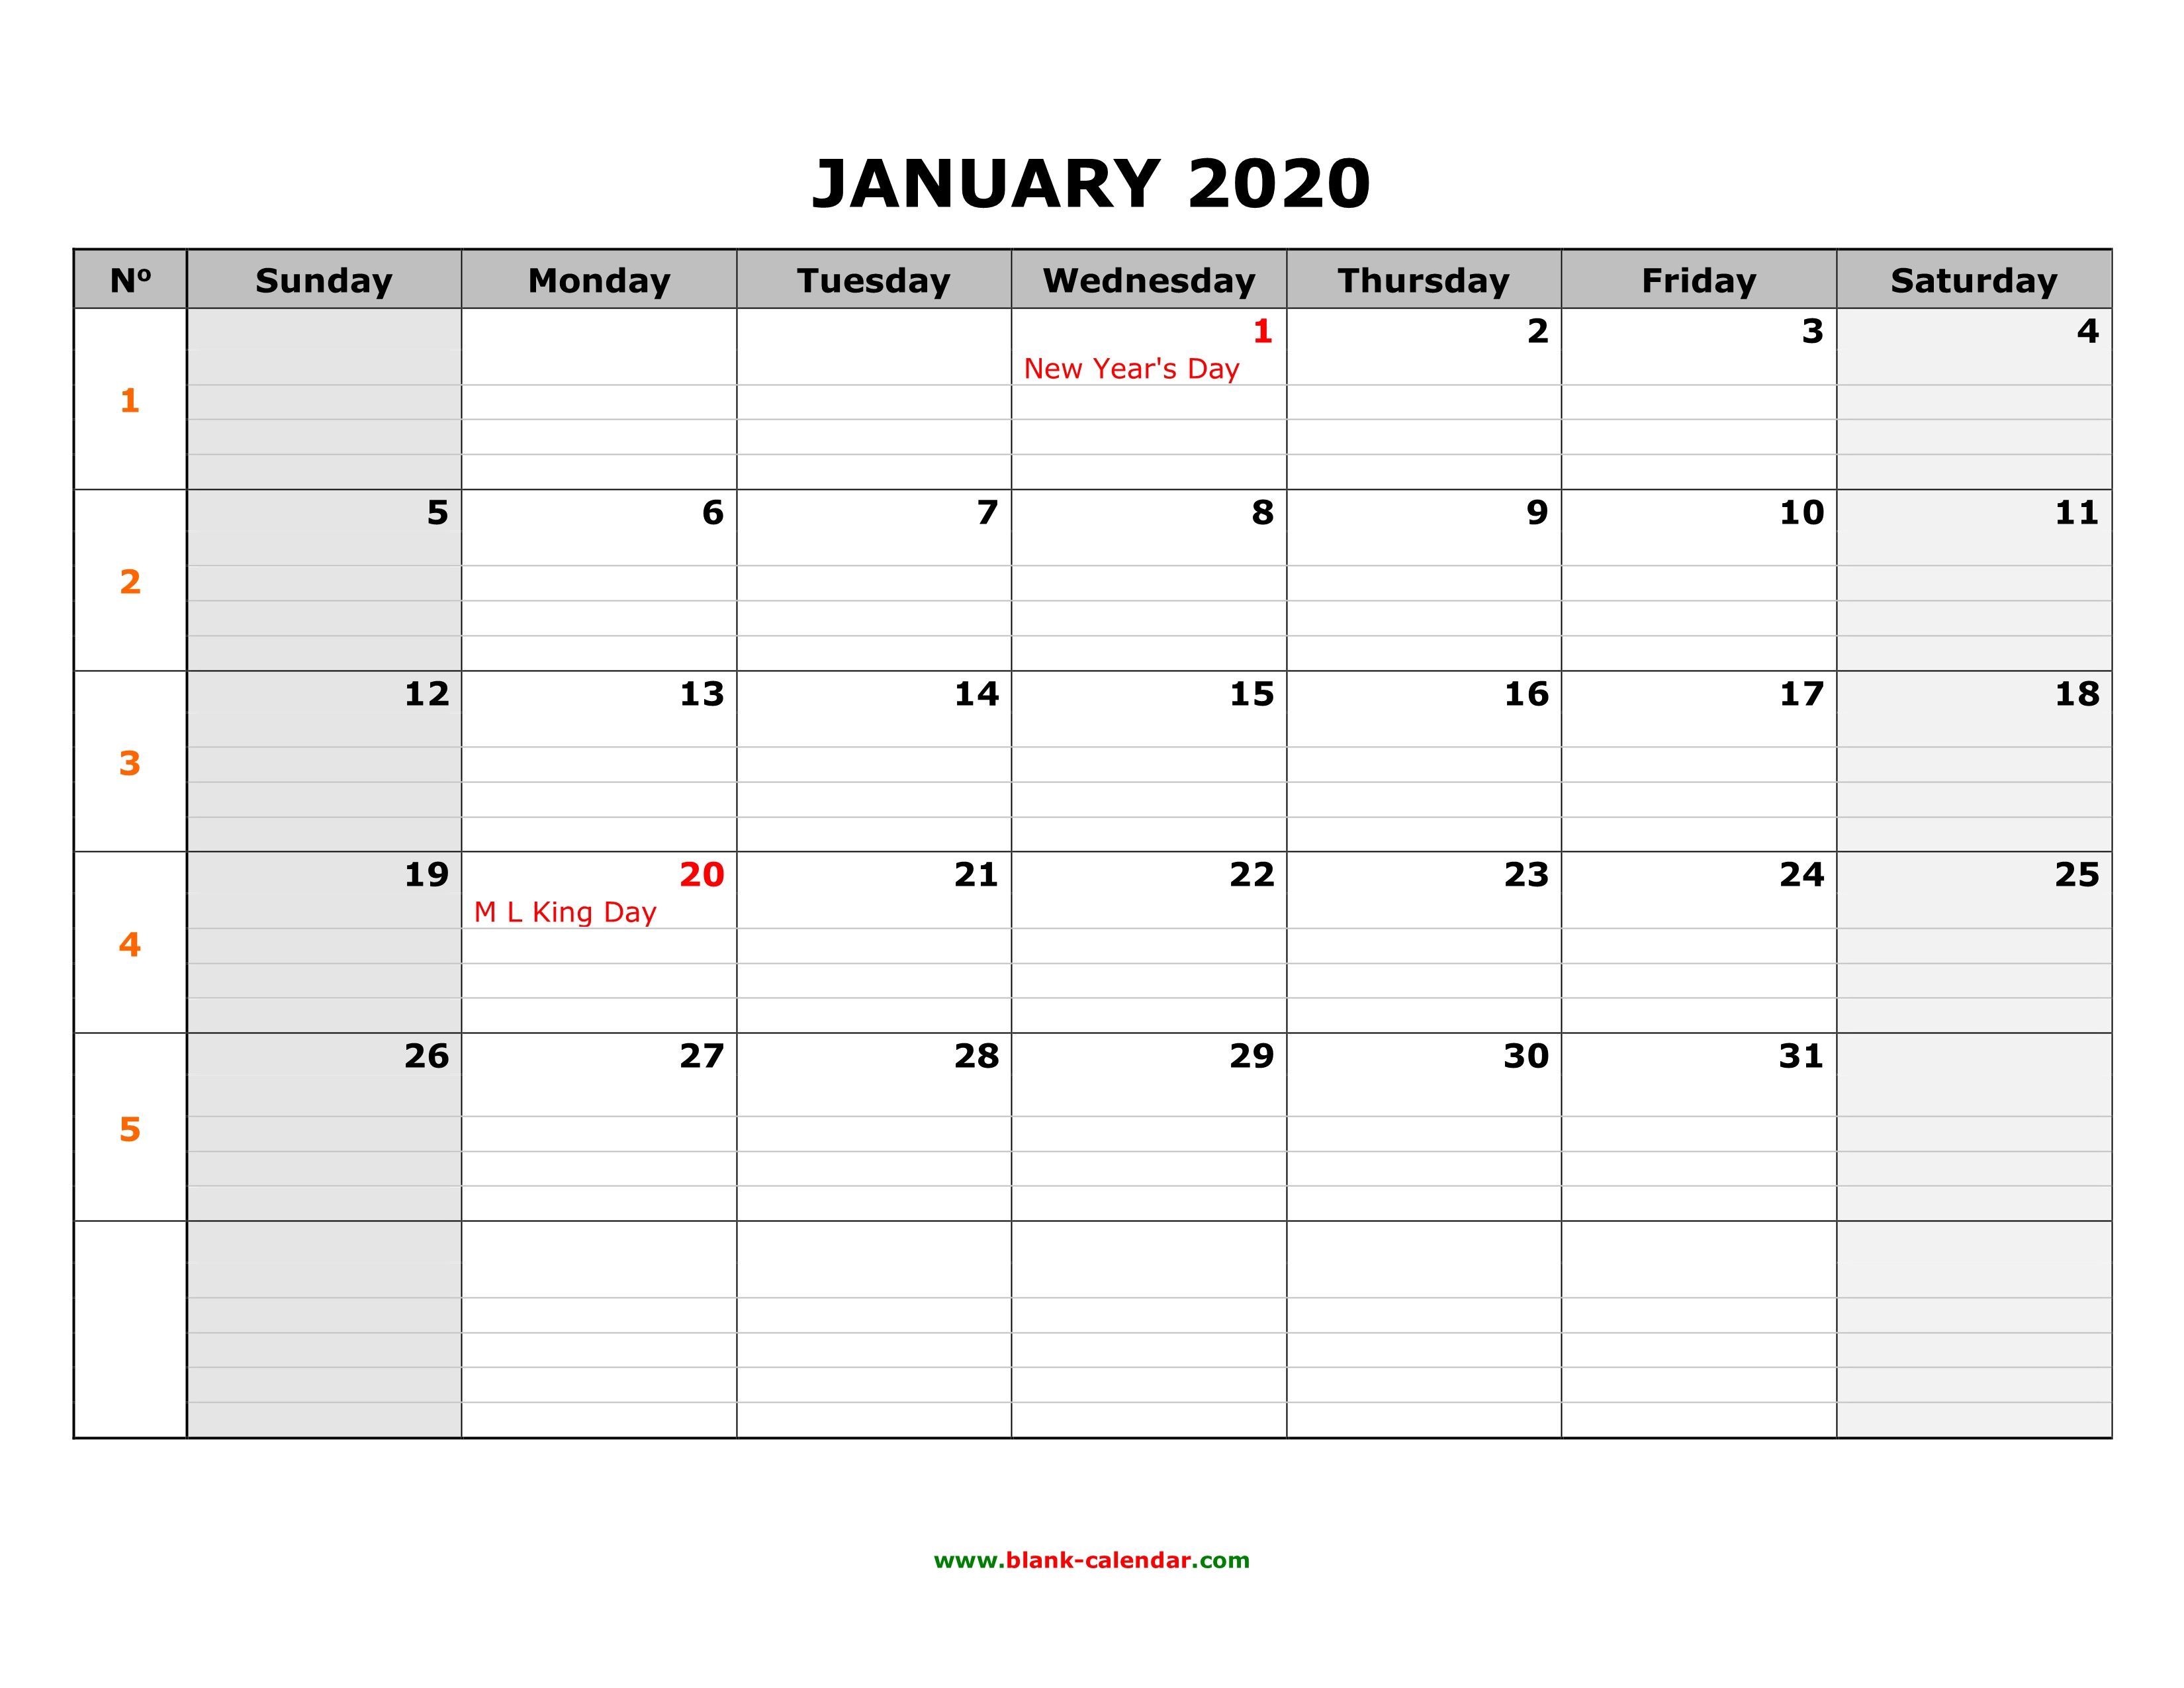 Excel Calendar January 2020 Free Download Printable January 2020 Calendar, large box grid